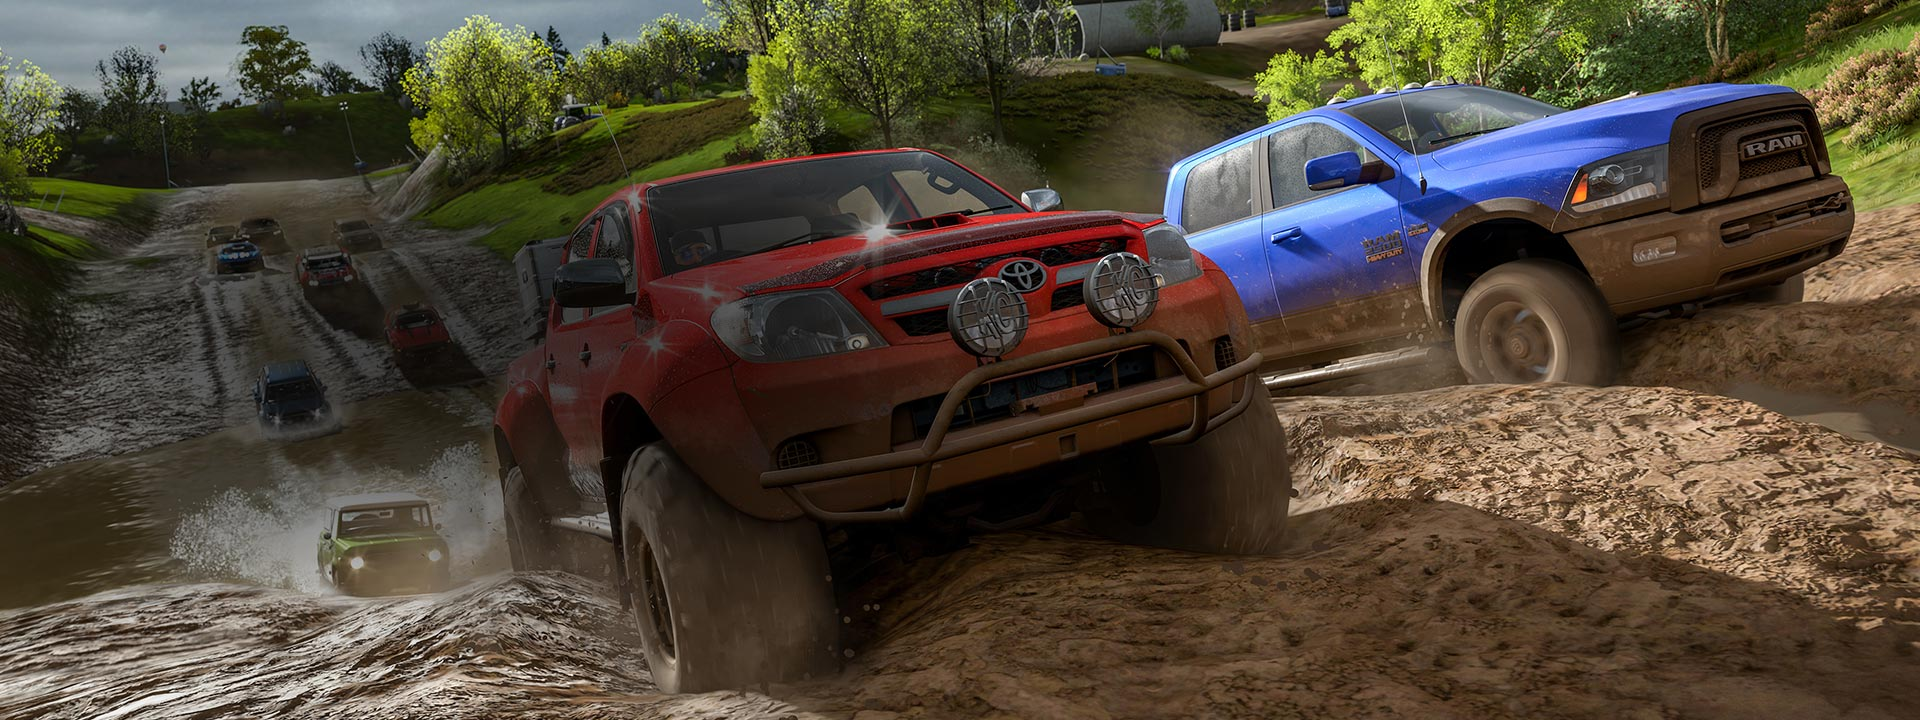 A Toyota pickup and a Dodge Ram cut through a muddy countryside track, in the lead